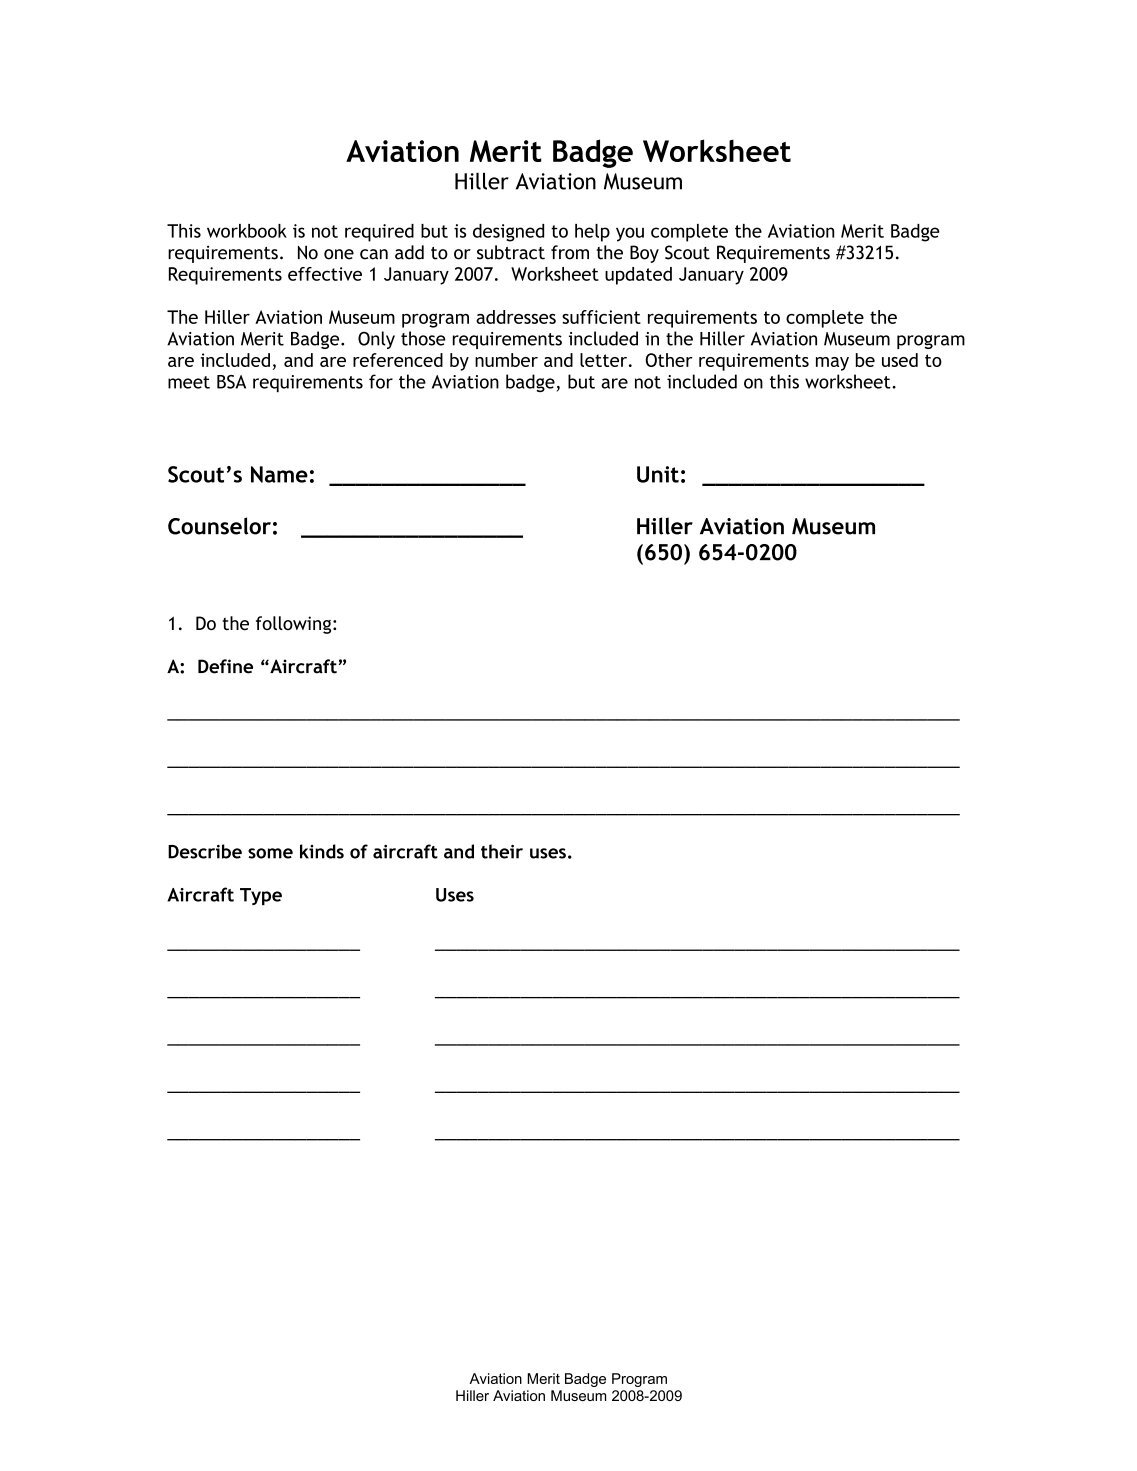 worksheet merit badge worksheet answers free worksheets library download and print on camping merit badge worksheet - Personal Fitness Merit Badge Worksheet